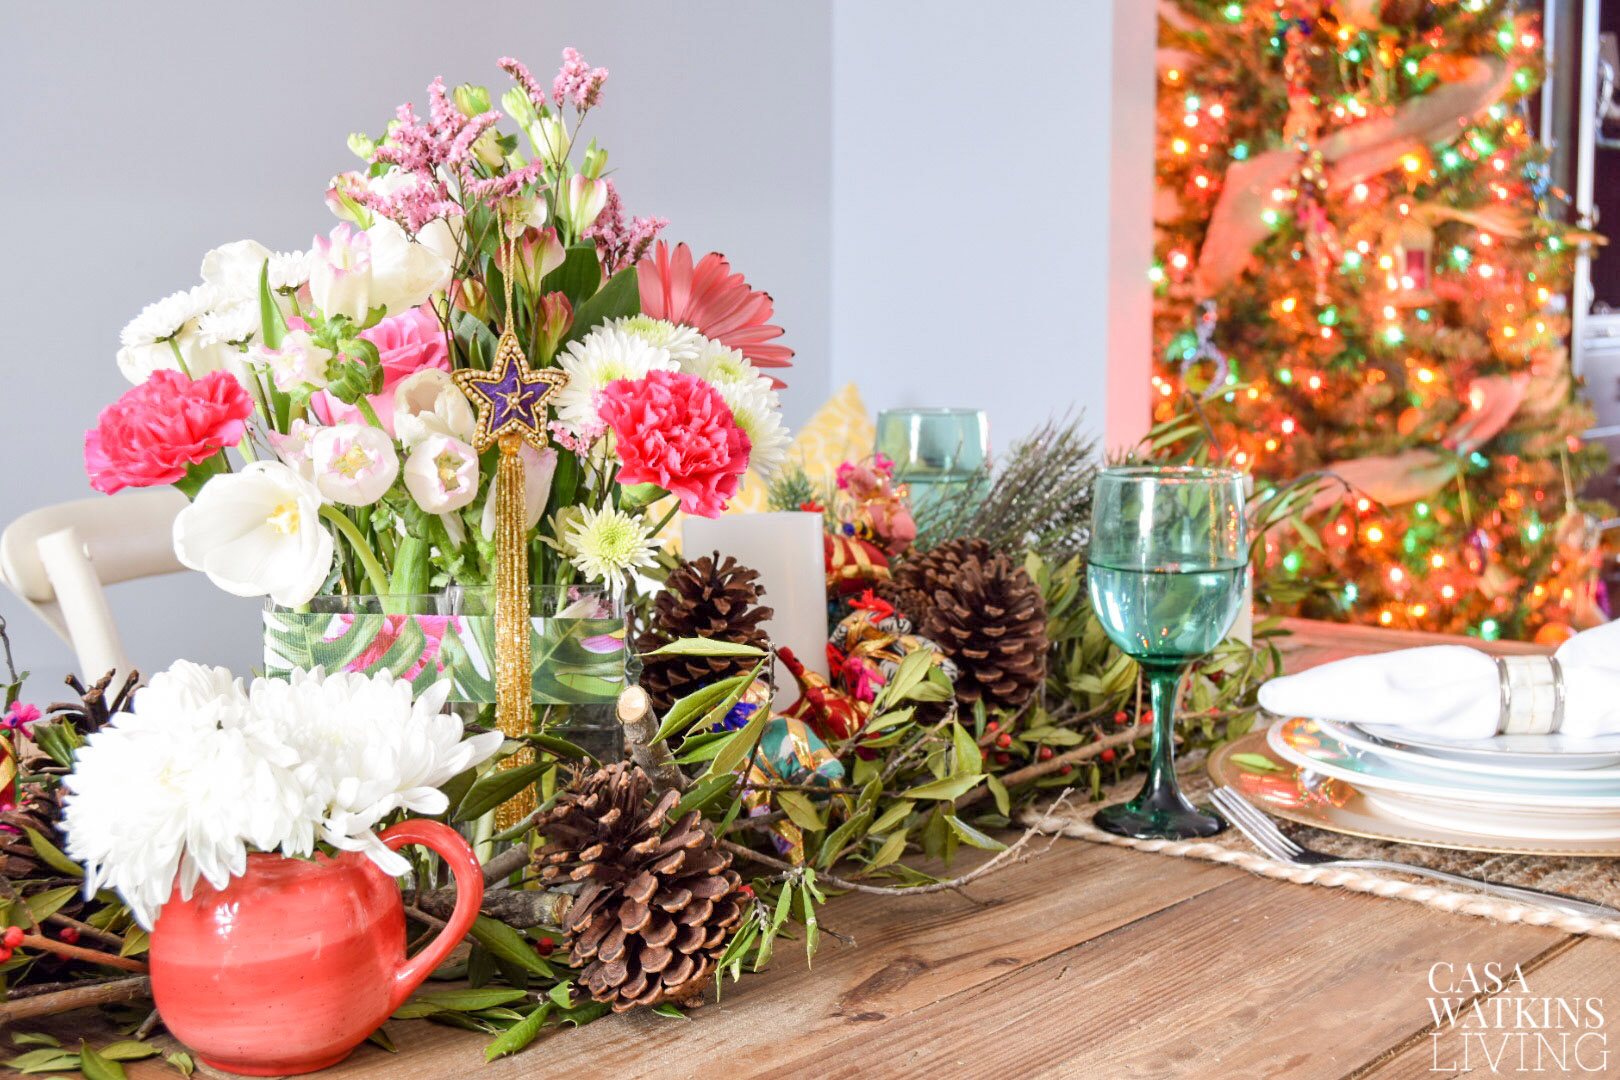 Colorful global style holiday centerpiece with ornament